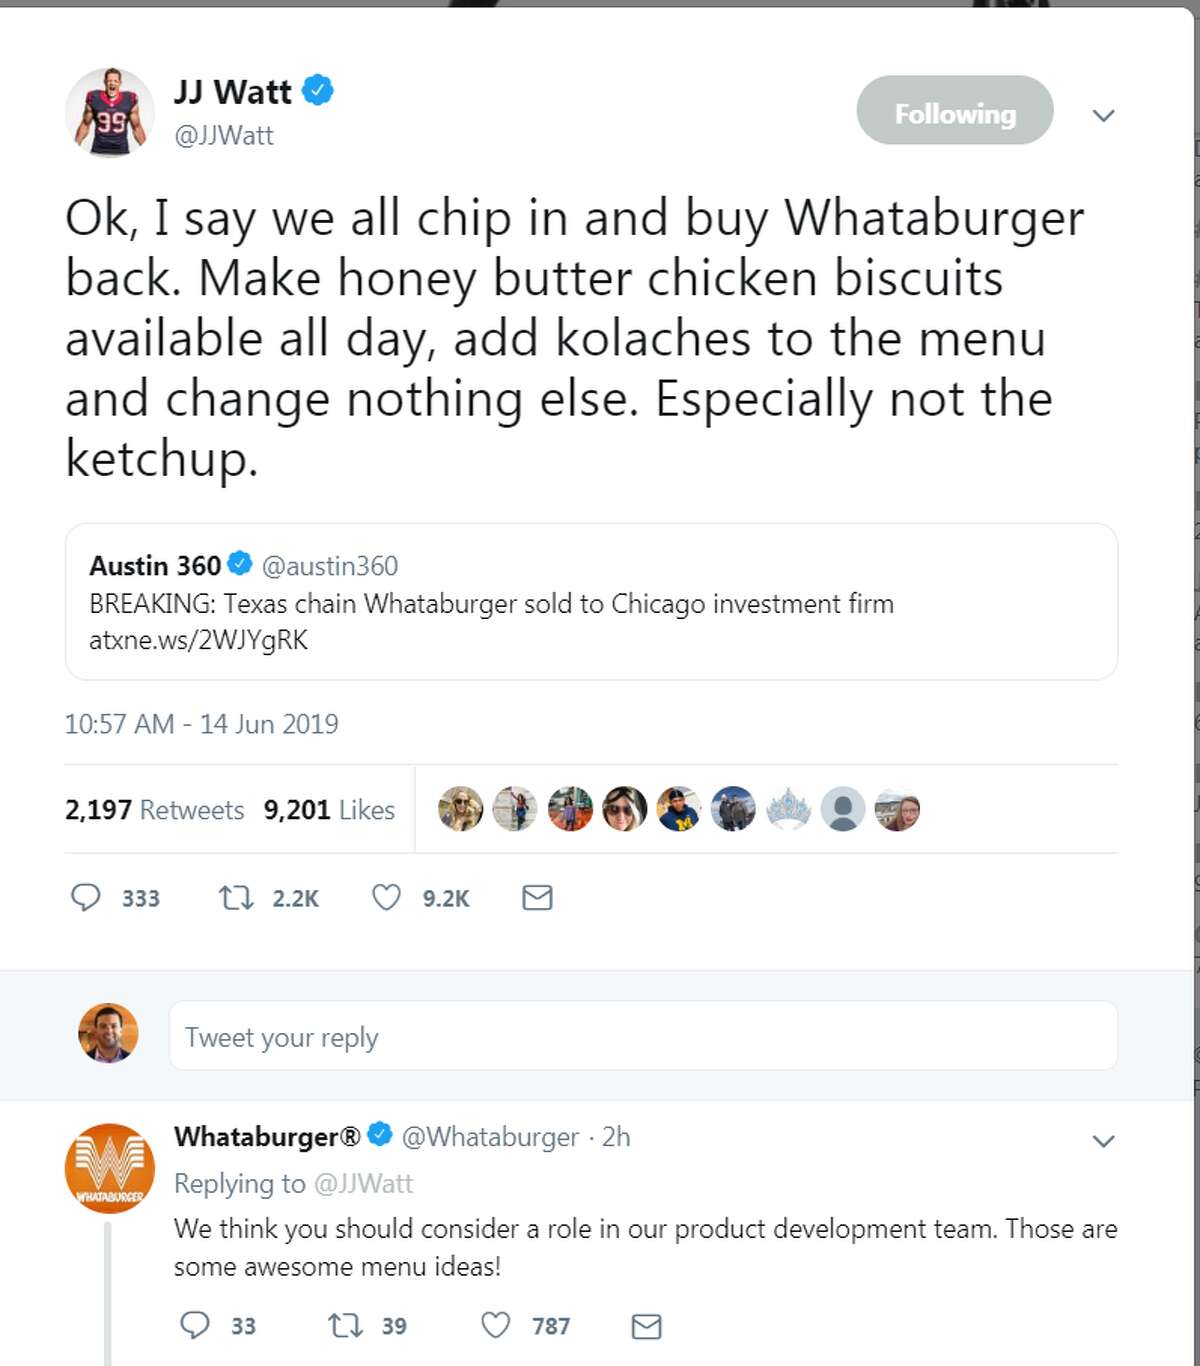 """Houston Texans defensive star J.J. Watt responded to popular Texas chain Whataburger being sold to a business in Chicago. """"Ok, I say we all chip in and buy Whataburger back. Make honey butter chicken biscuits available all day, add kolaches to the menu and change nothing else. Especially not the ketchup."""" >>>Click through to see all of the reactions from around Texas, Houston and the rest of social media to the Whataburger sale."""